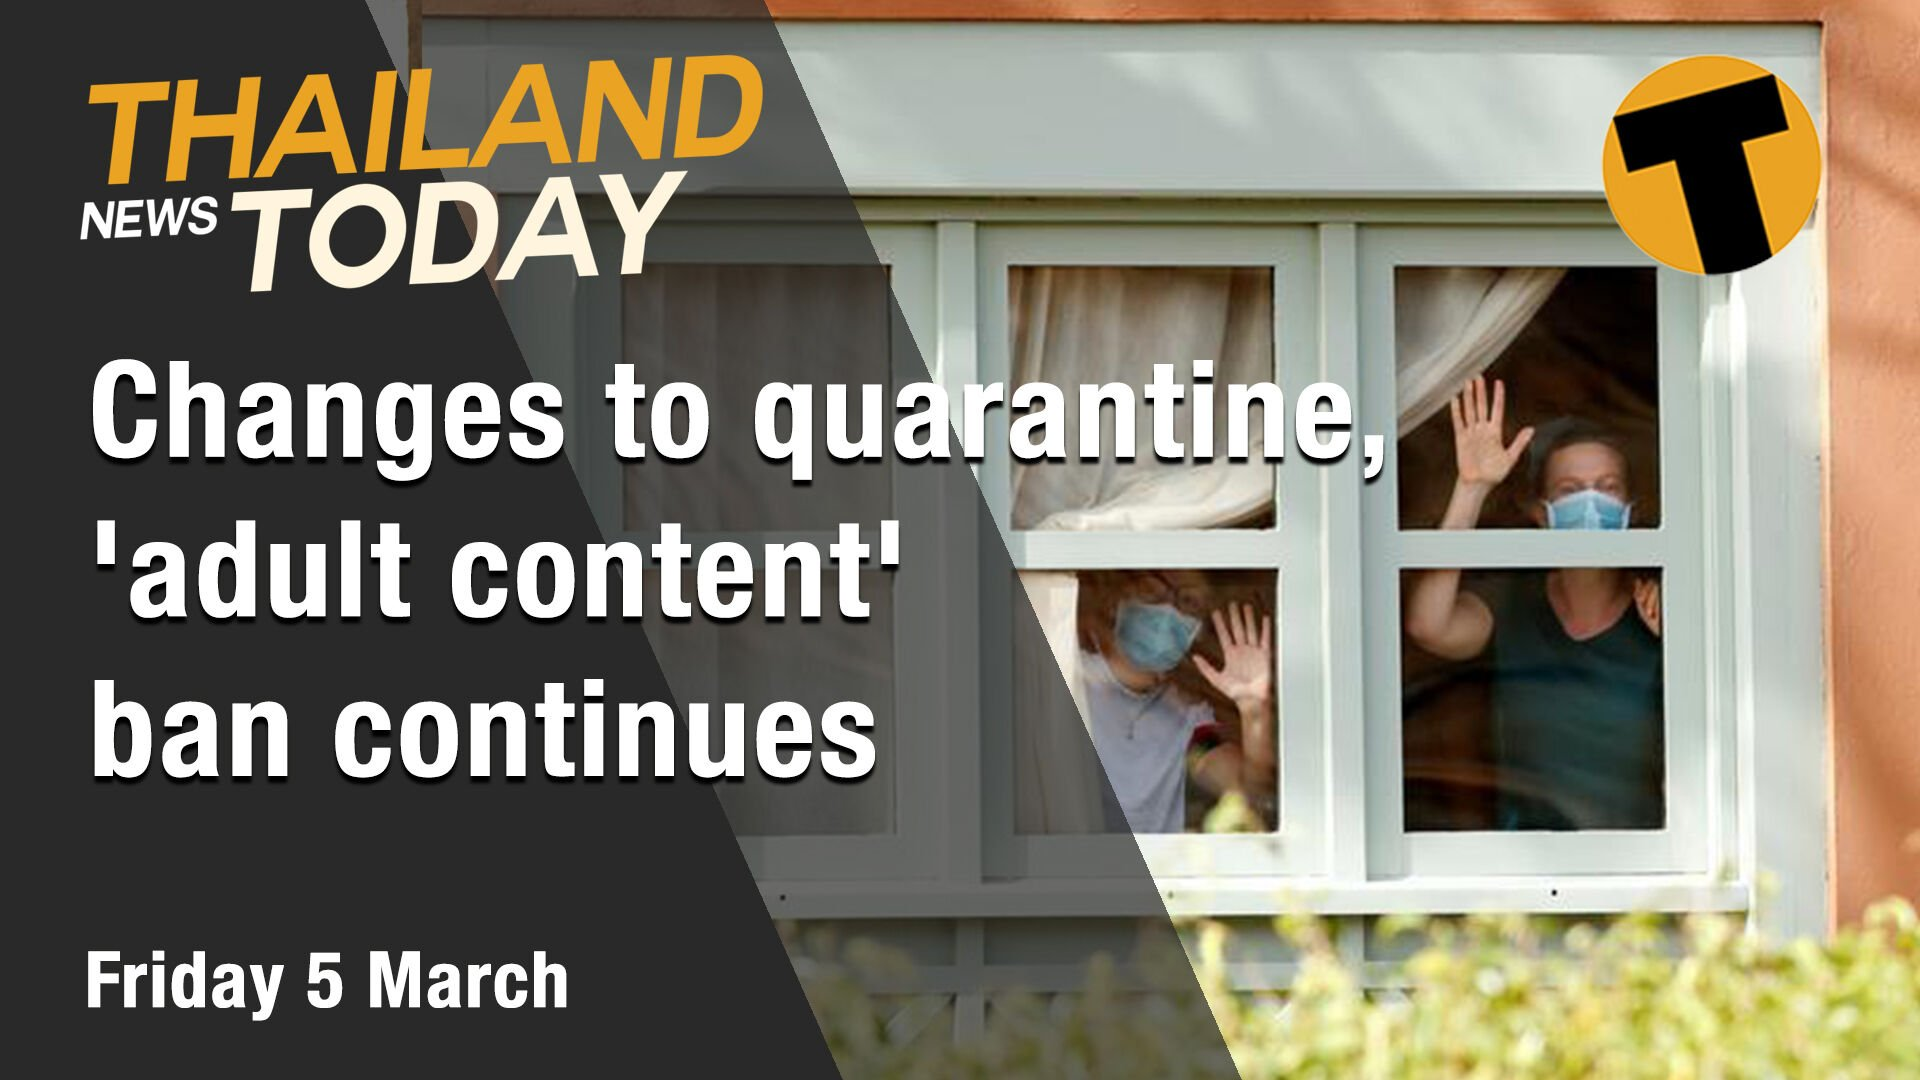 Thailand News Today | Changes to quarantine, 'adult content' ban continues | March 5 | Thaiger